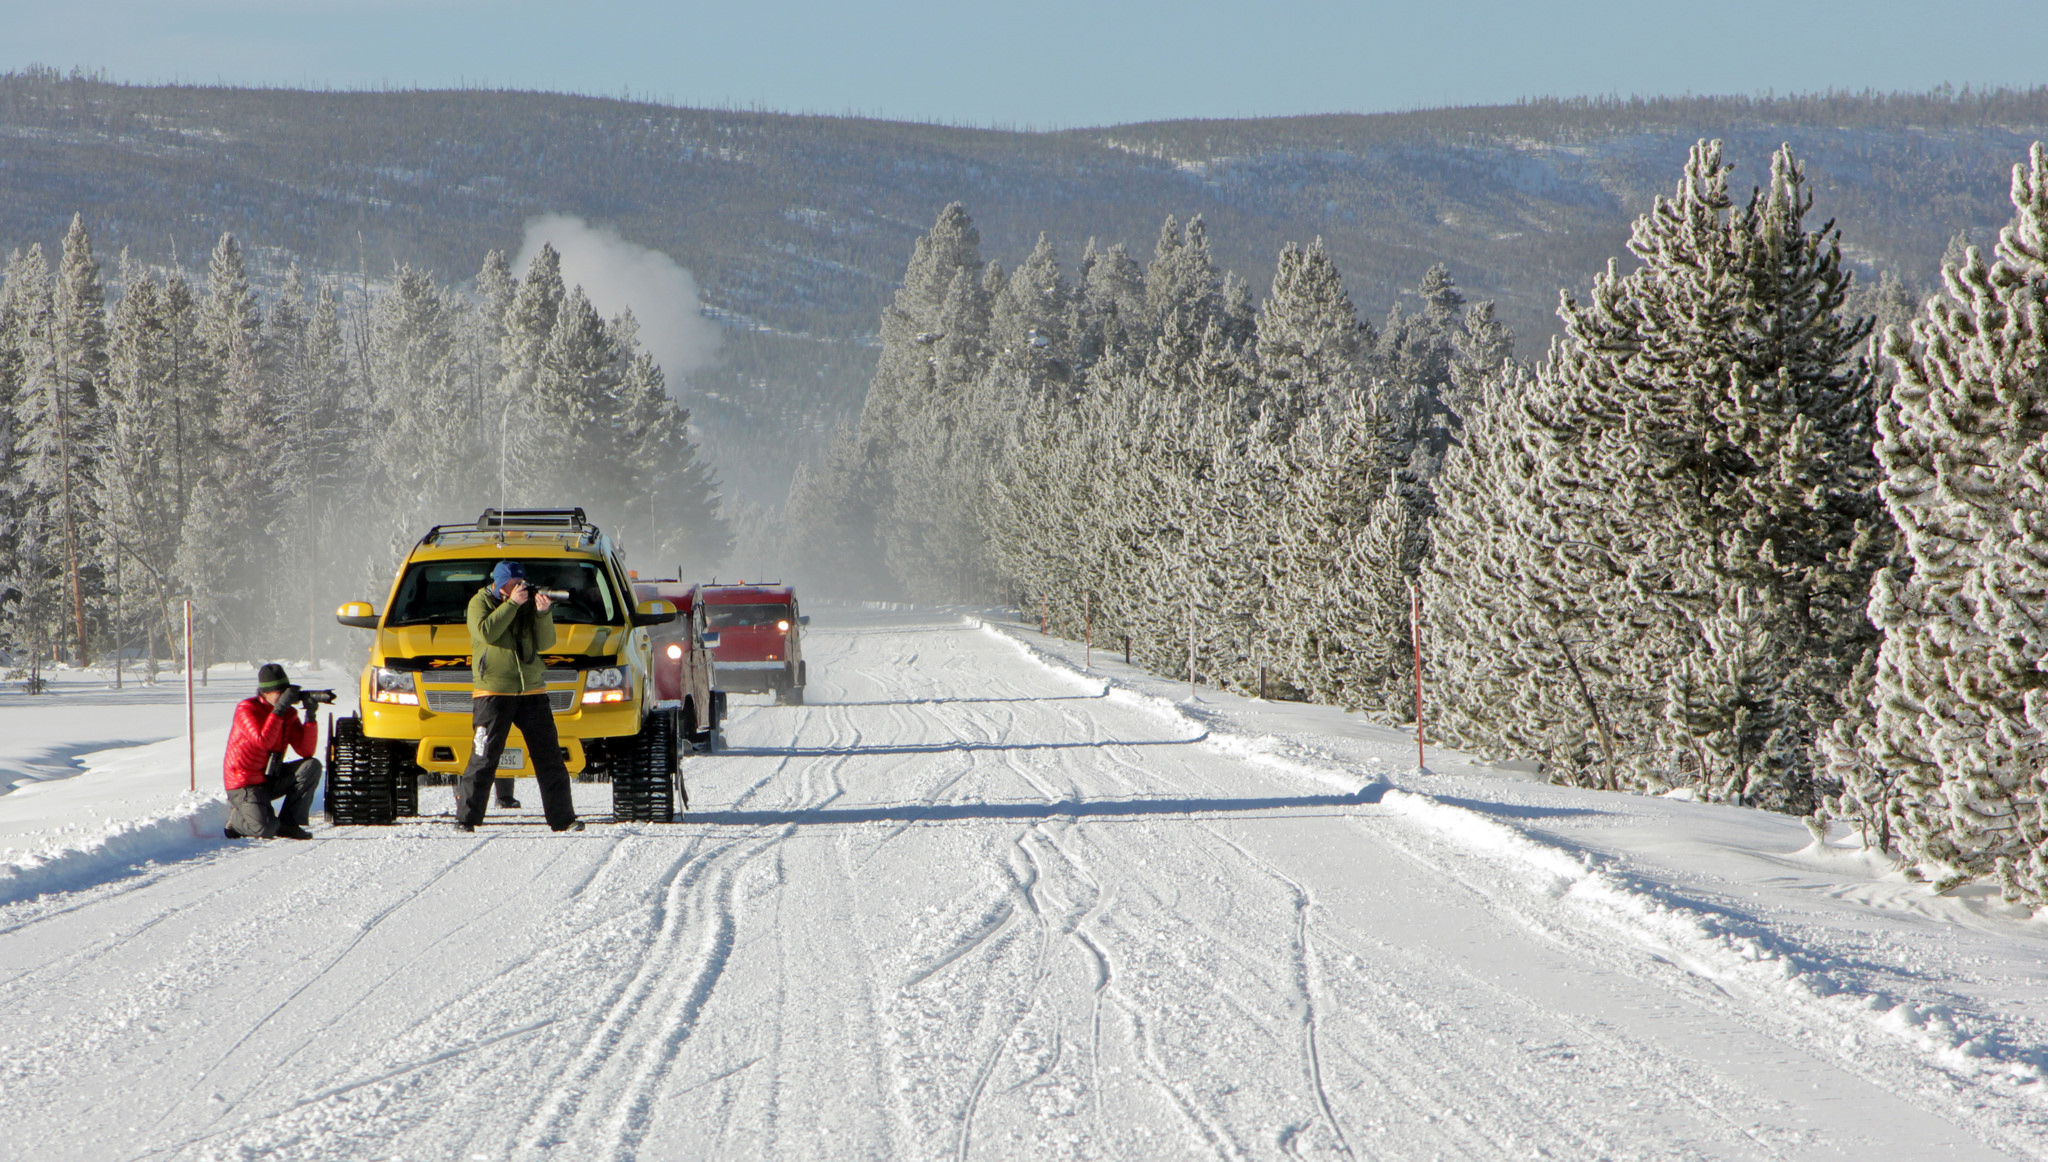 Experiencing Yellowstone by Snowcoach is the ideal way to see this timeless national park in winter ... photo by CC user yellowstonenps on Flickr